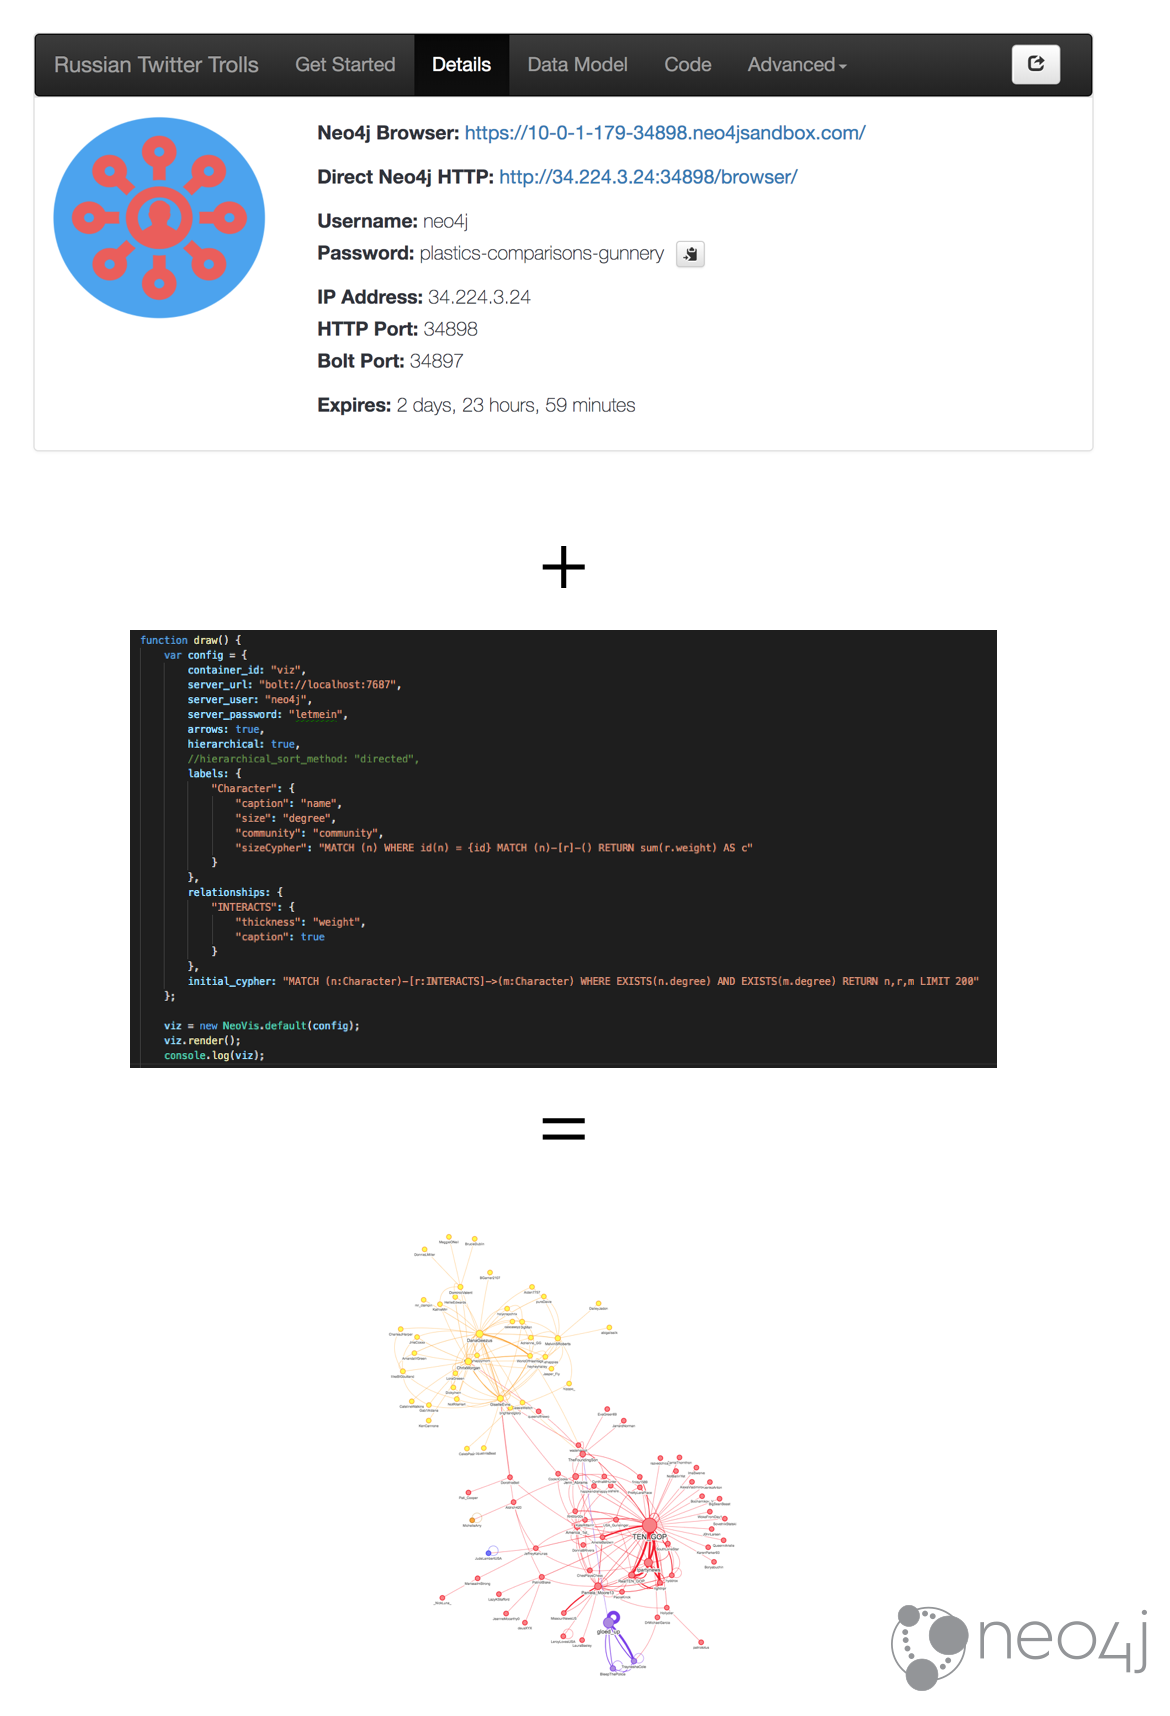 Graph Visualization With Neo4j Using Neovis js - Neo4j Developer